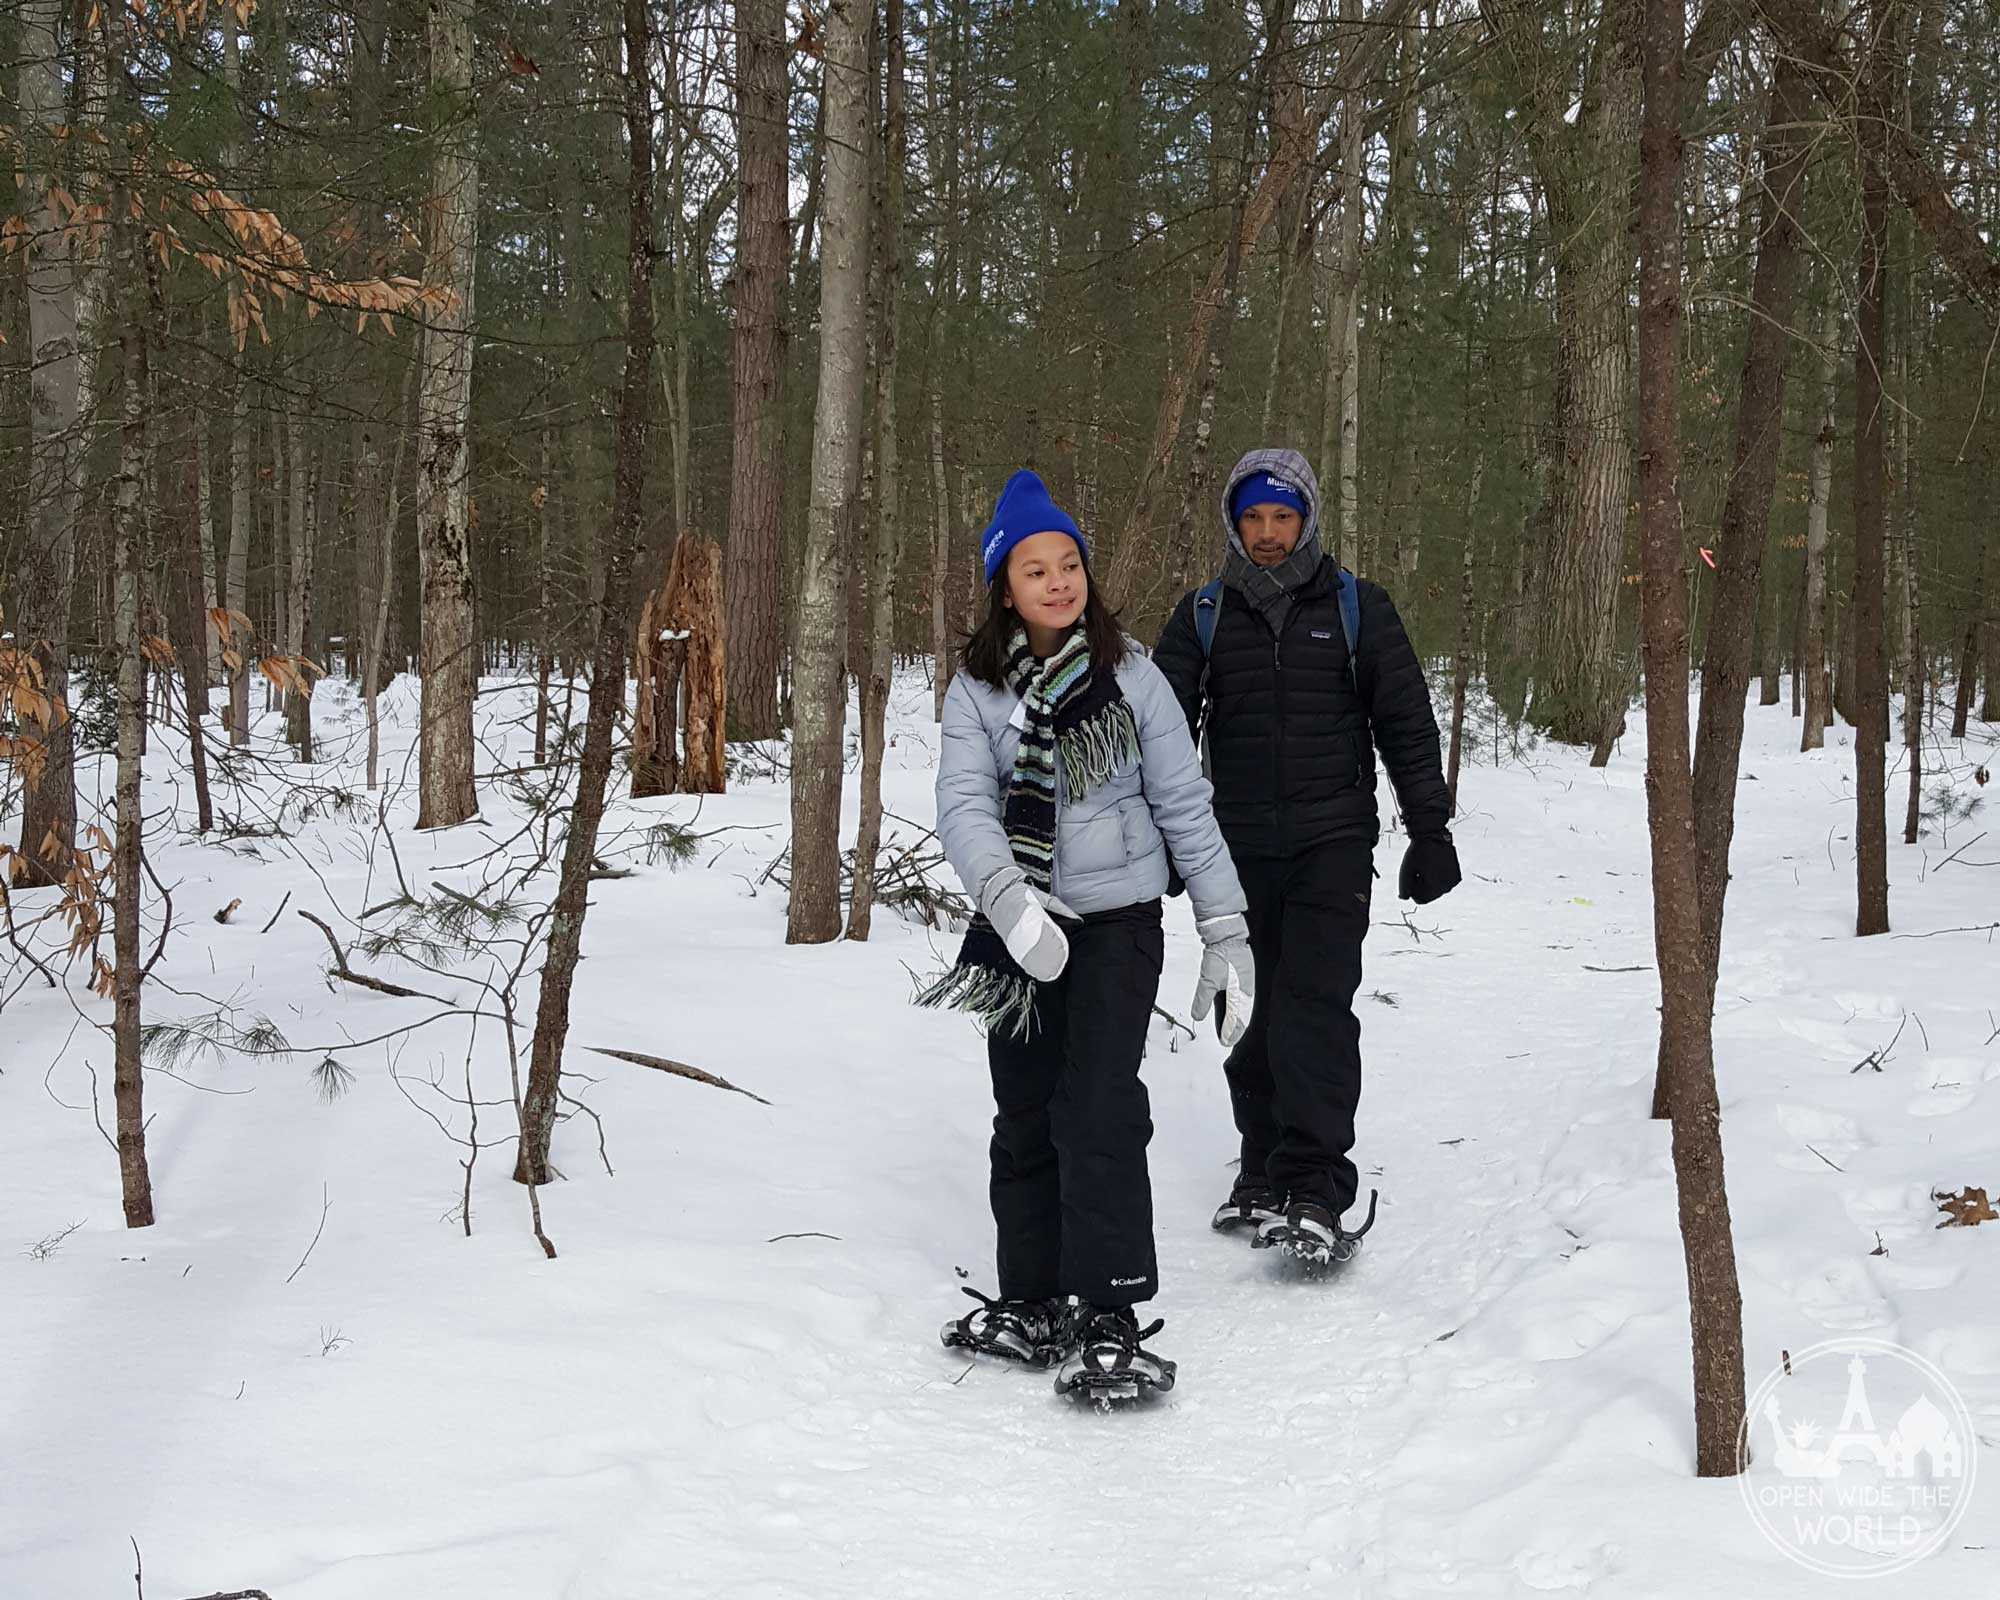 Muskegon Winter Sports Complex's miles of varied snowshoe trails mean there's one for every type of snowshoer! A fun winter activity in West Michigan. #snowshoeing #openwidetheworld